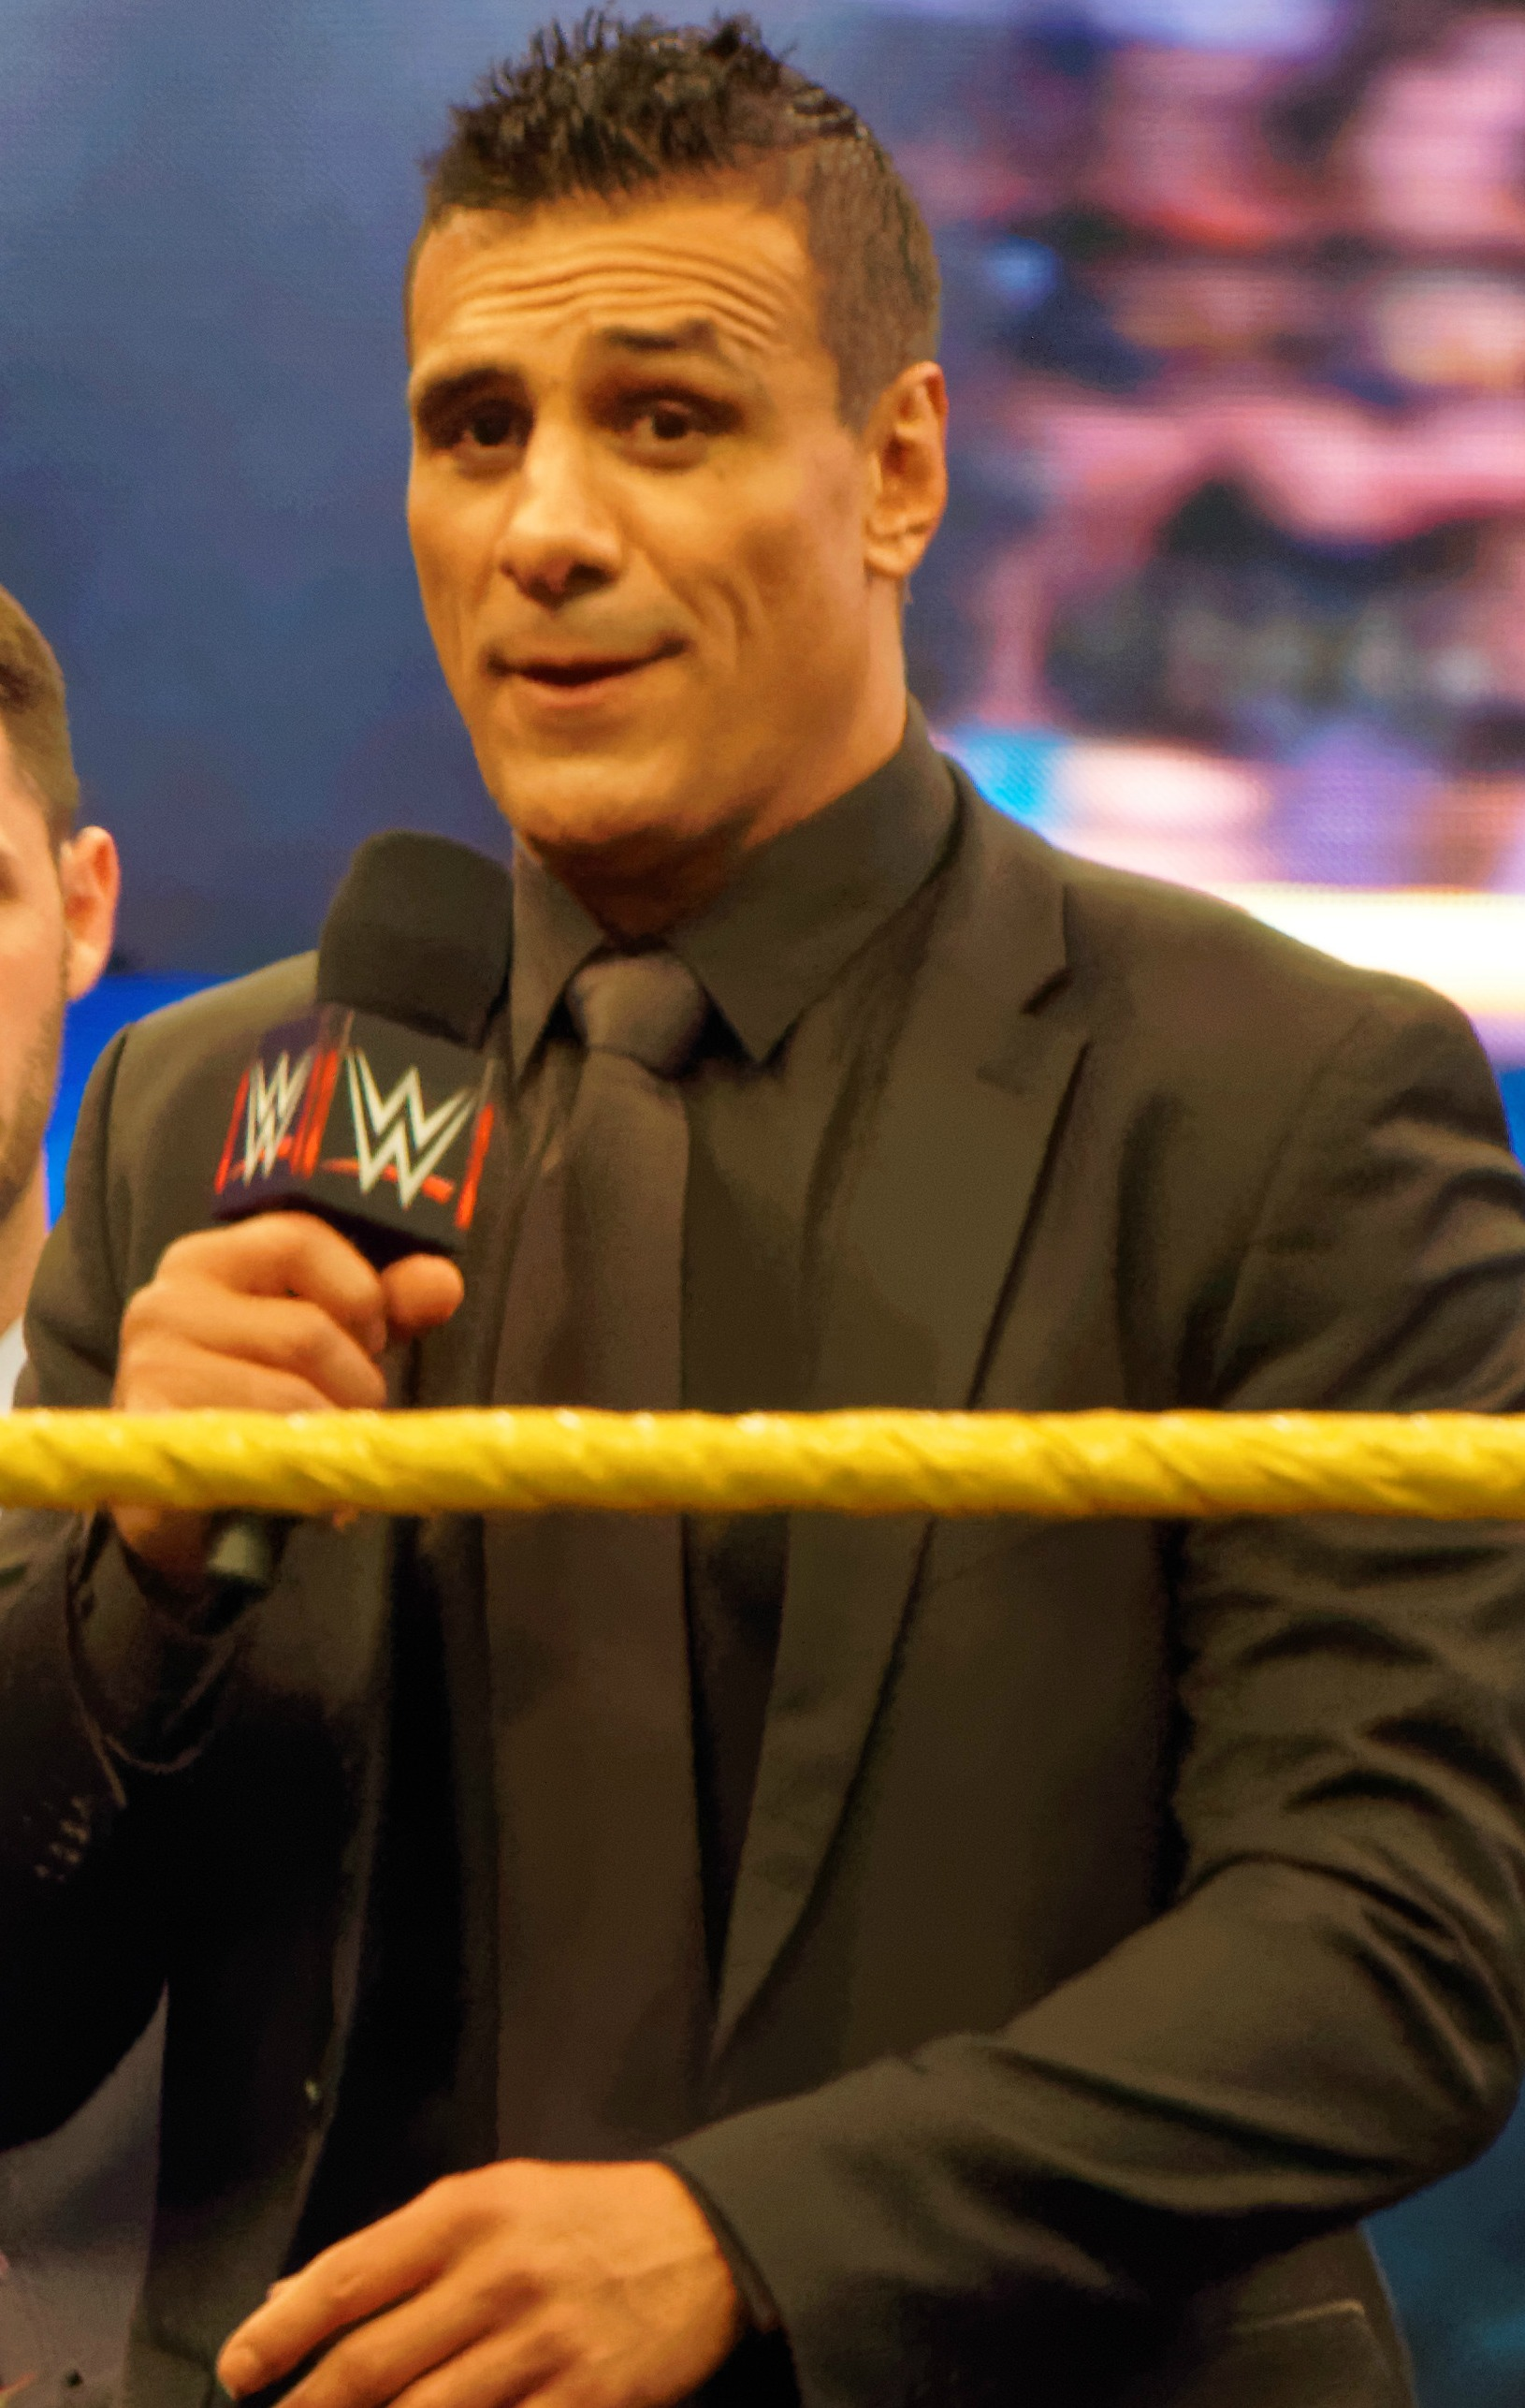 The 41-year old son of father Dos Caras and mother(?) Alberto Del Rio in 2018 photo. Alberto Del Rio earned a  million dollar salary - leaving the net worth at 6 million in 2018